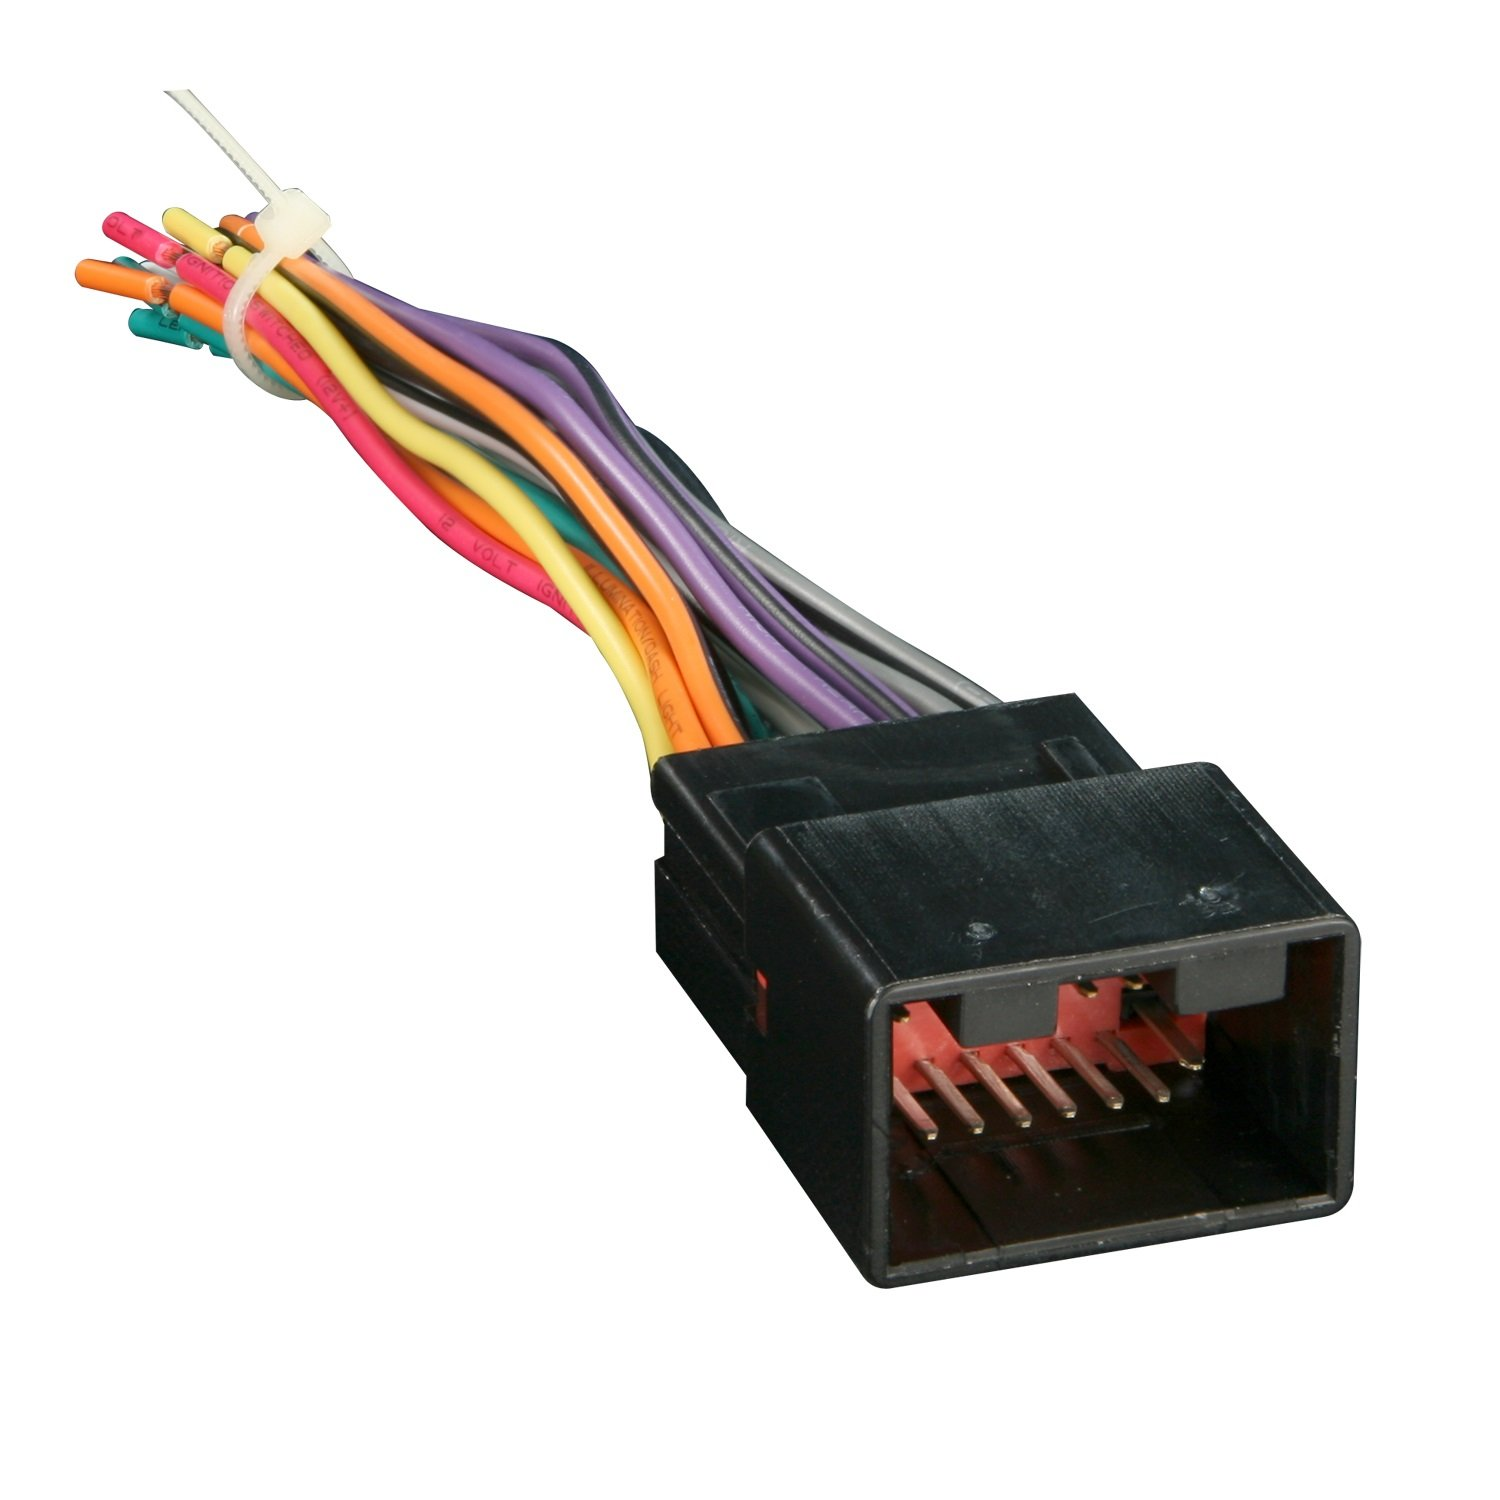 61X4UocRDeL._SL1500_ amazon com wiring harnesses electrical automotive xo vision wiring harness at n-0.co